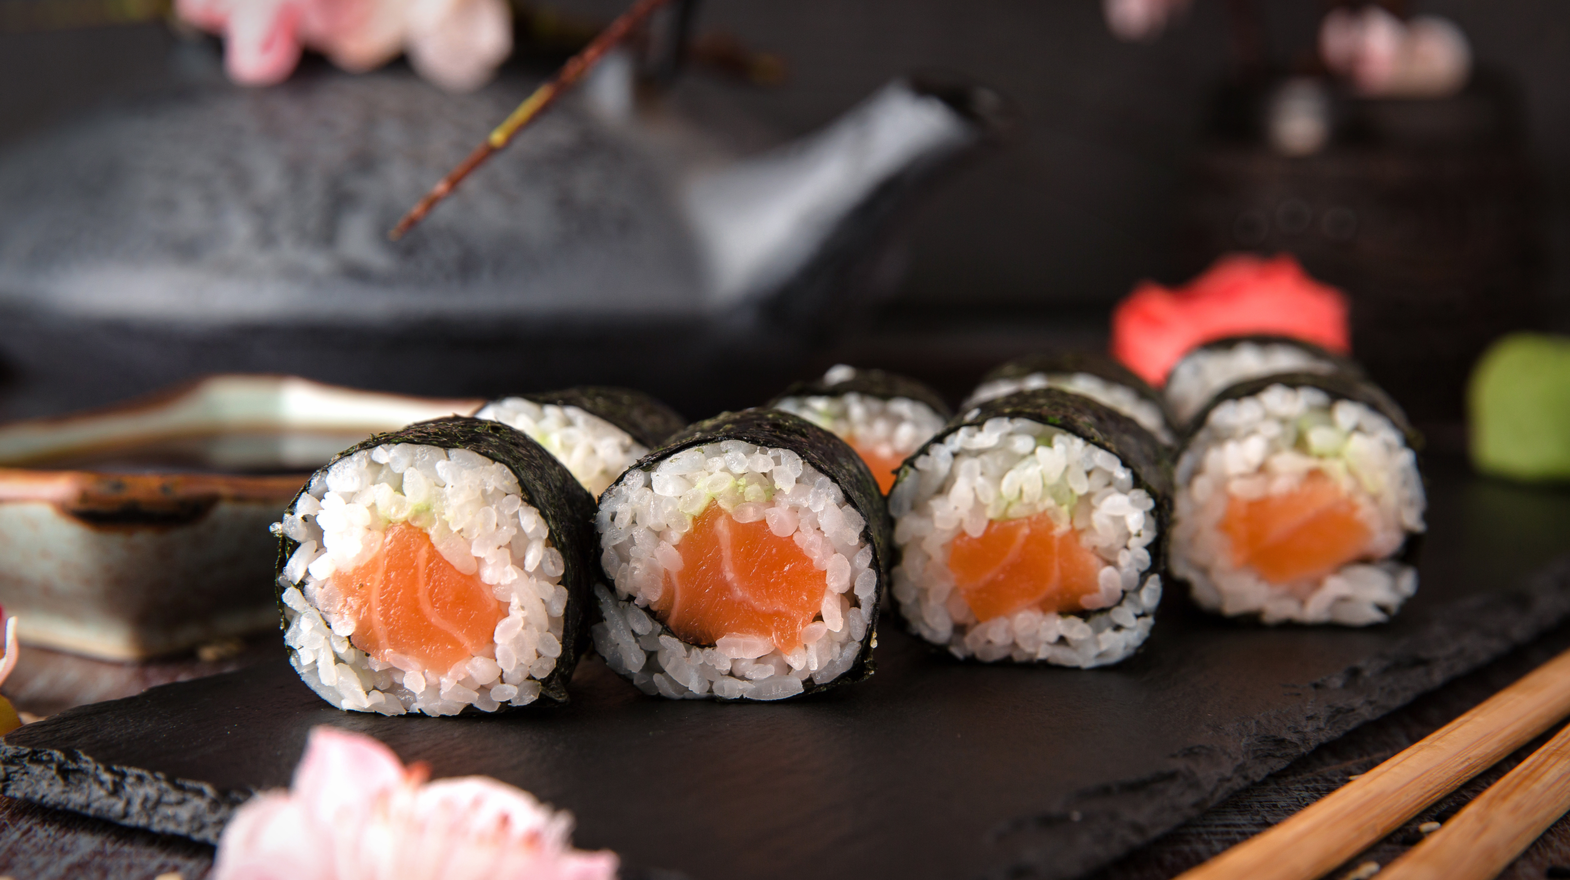 How To Make Sushi  Easy Maki Rolls Step-By-Step